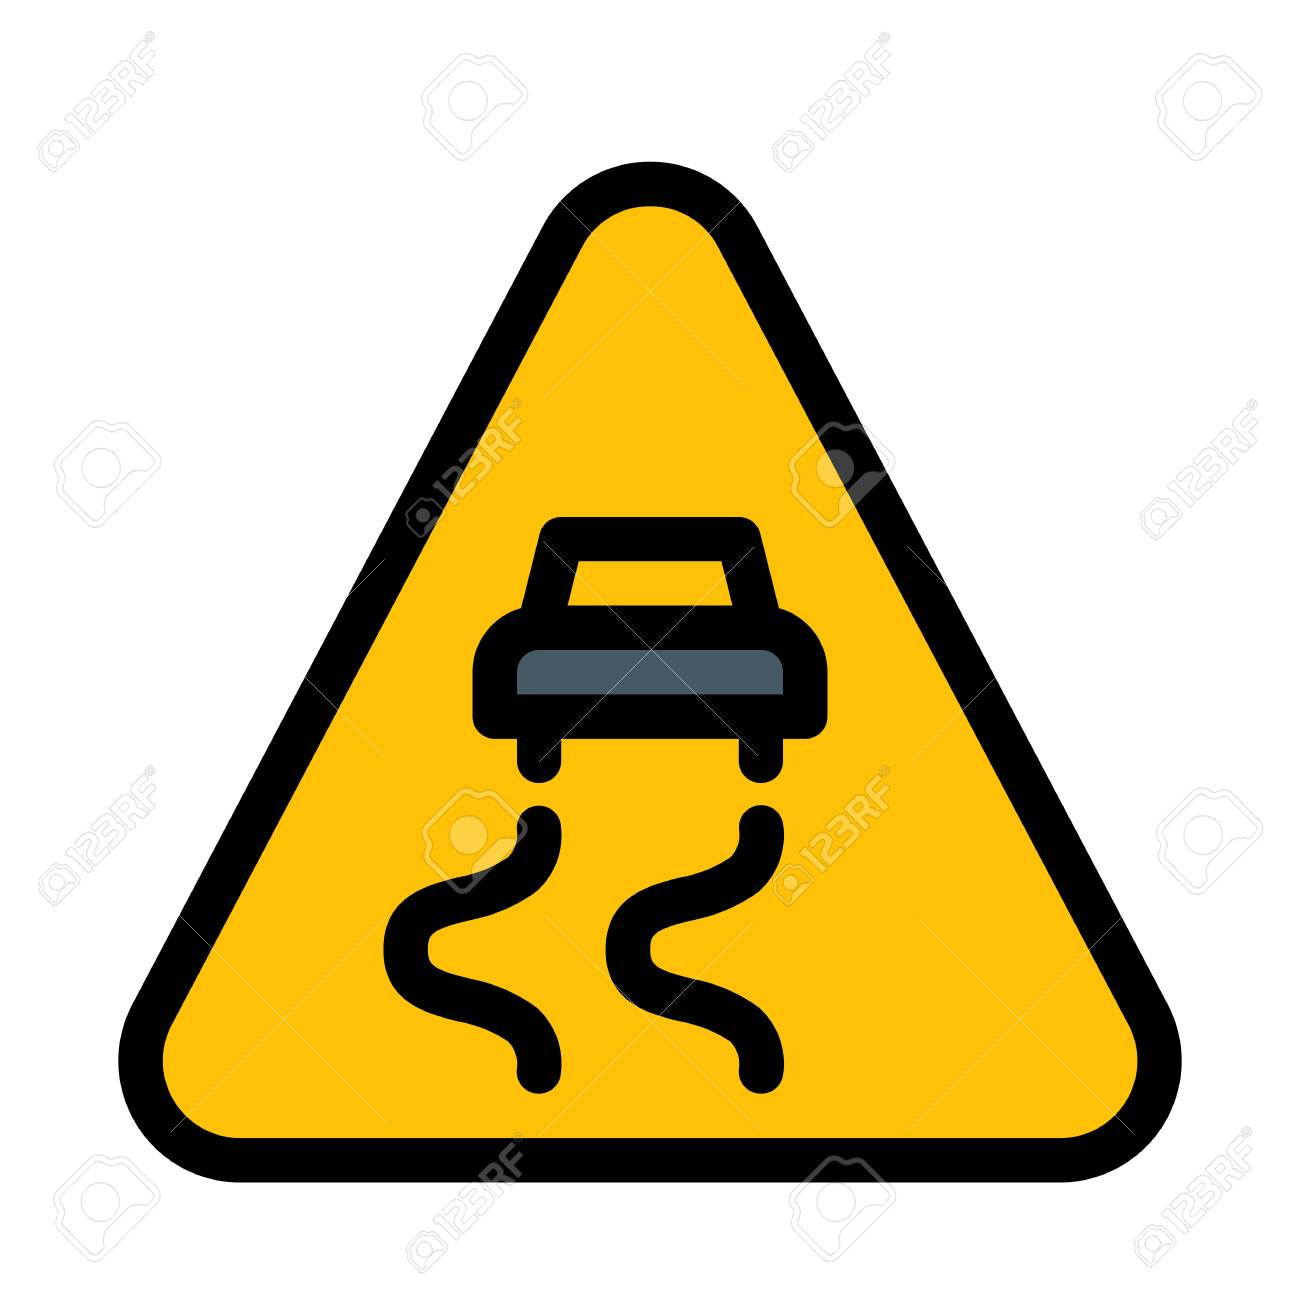 Slippery Roads Clipart | Free Images at Clker.com - vector clip art online,  royalty free & public domain